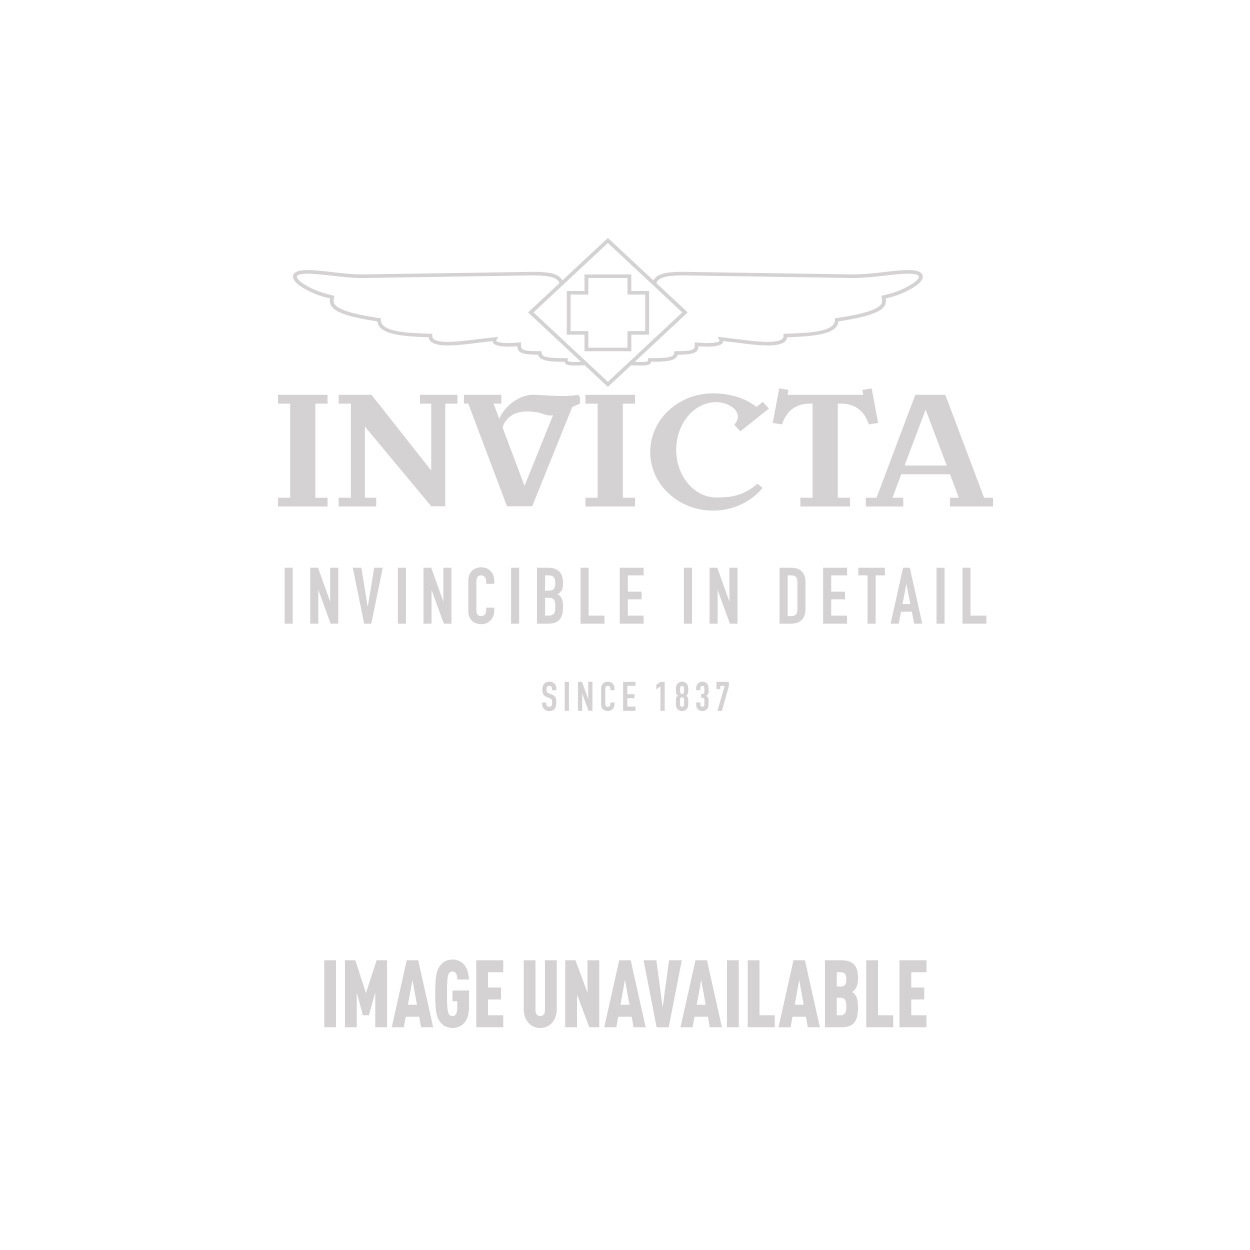 Invicta 20cm Women's Bracelets in Rhodium - Model J0284